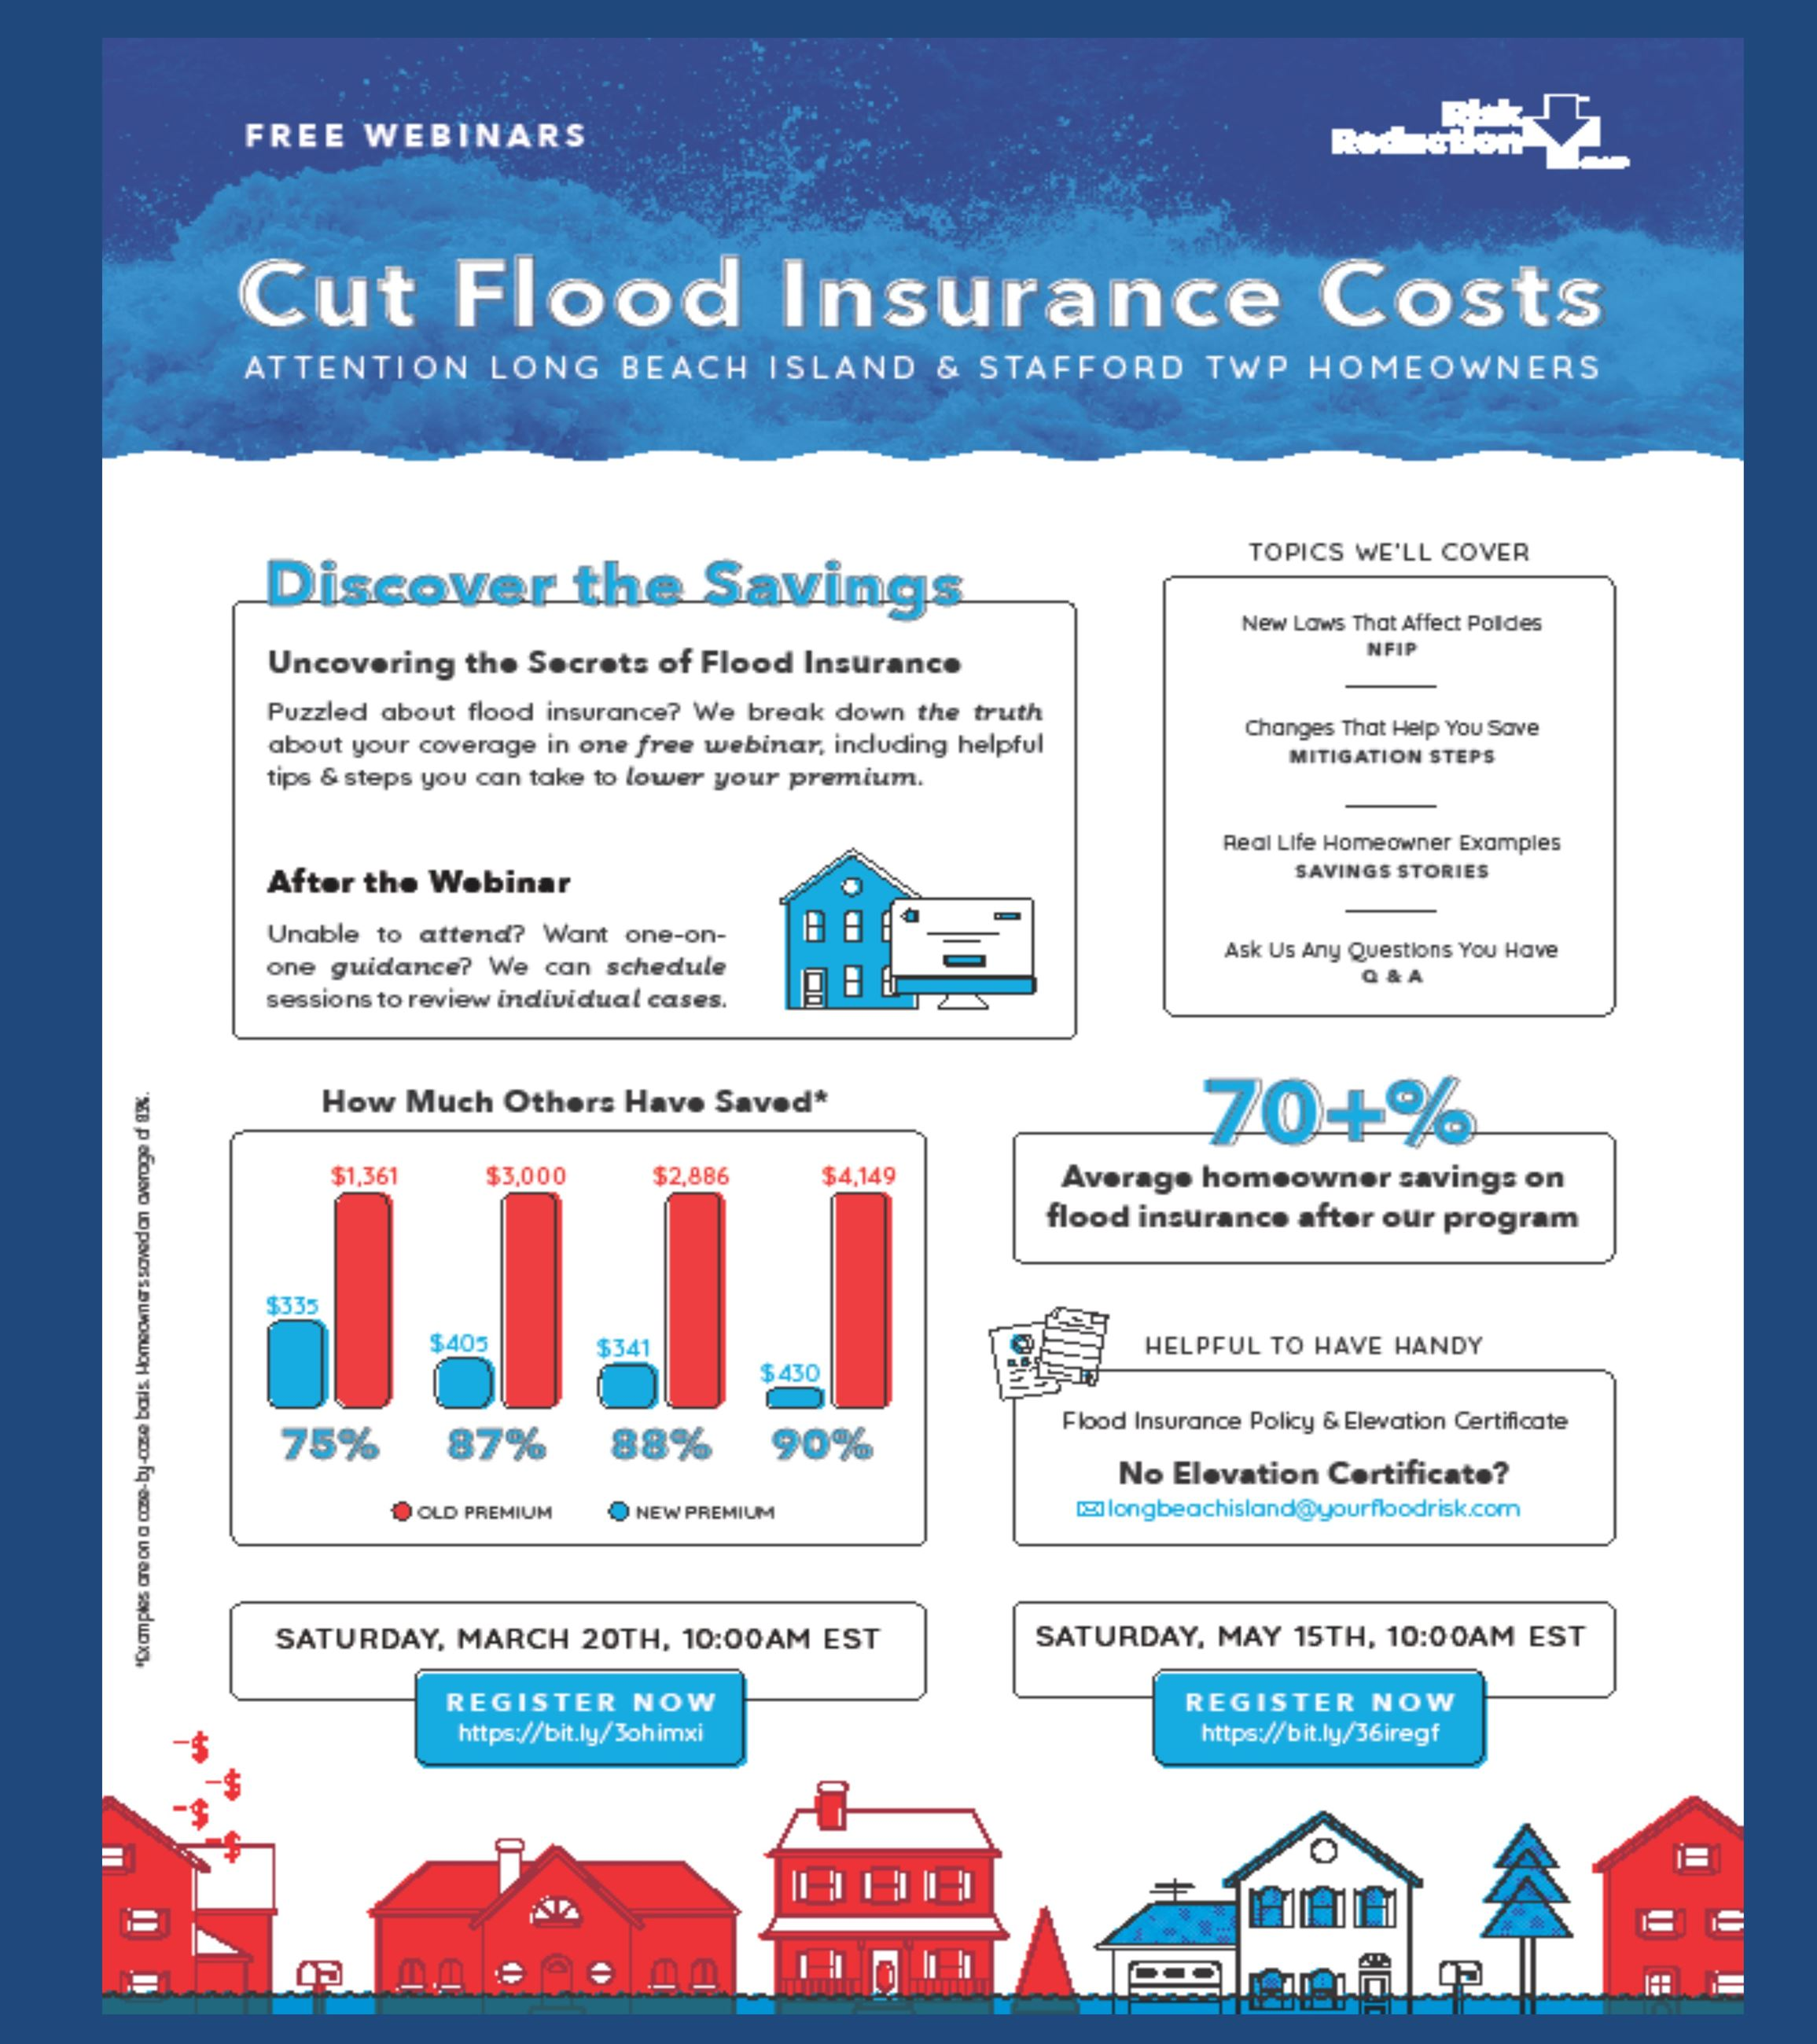 Cut Flood Insurance